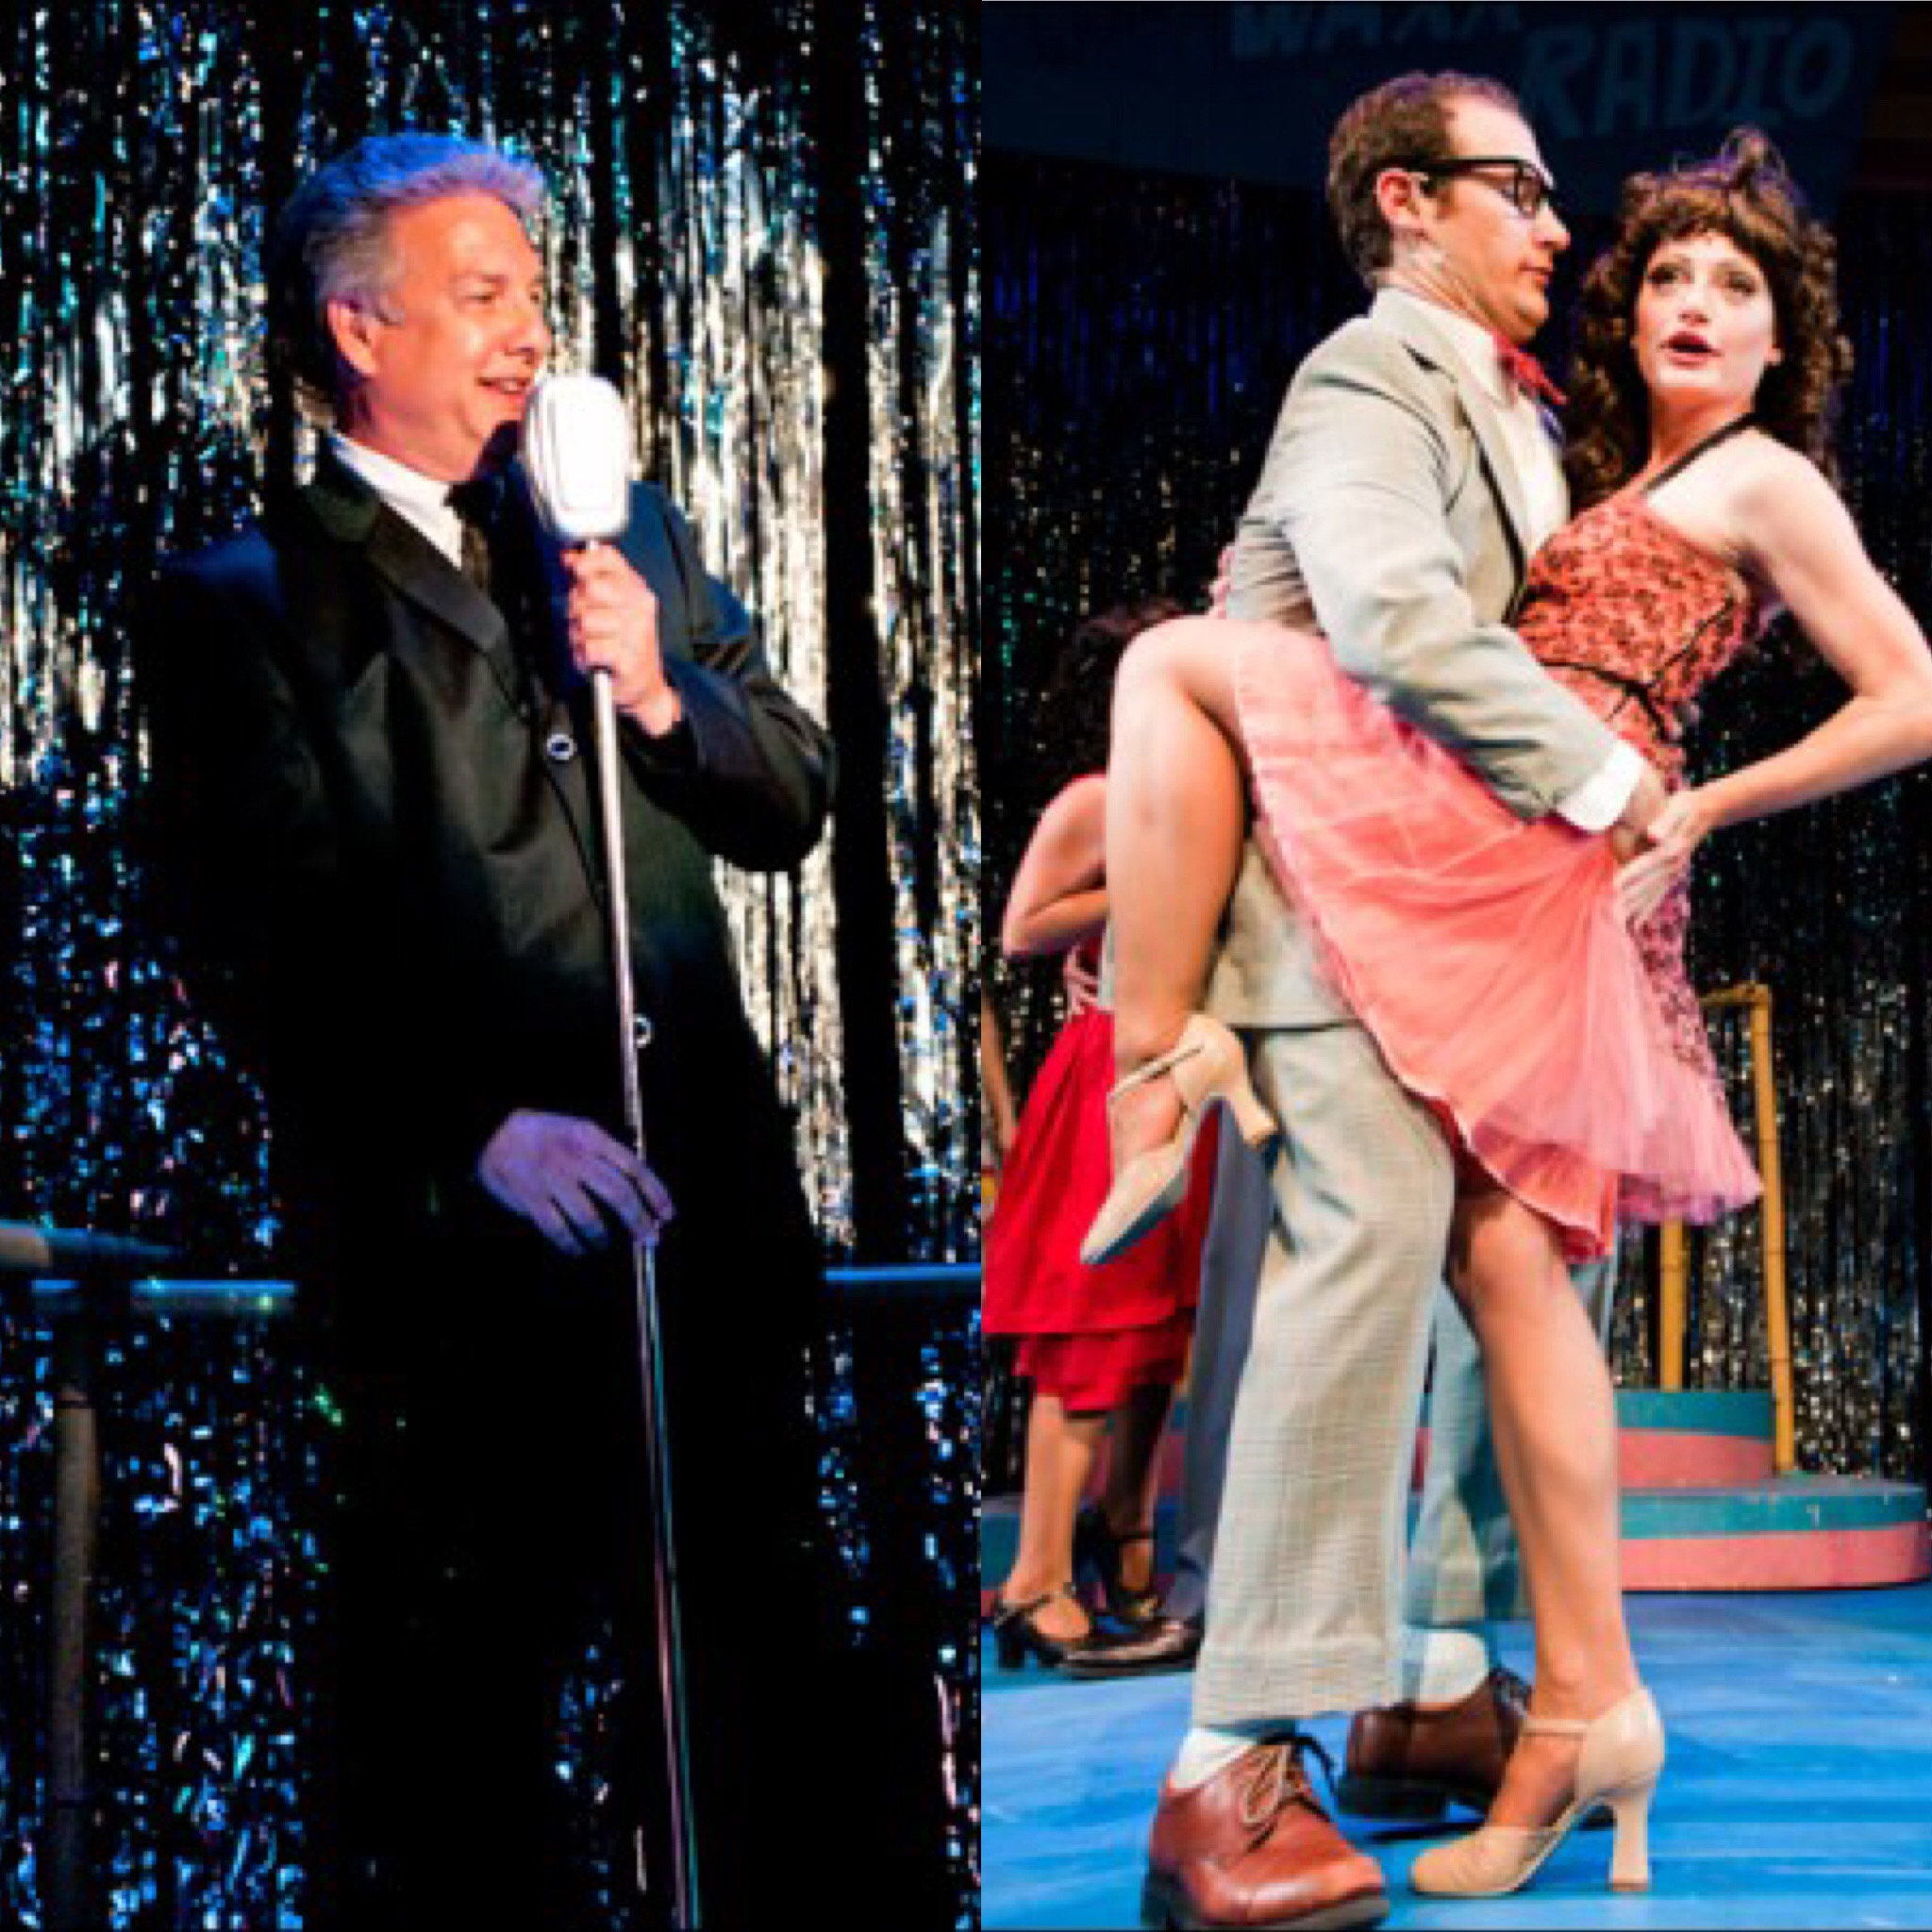 """Marc Summers, Drew Gasparini, and Dana Maddox in """"Grease"""" at Surflight, Photo Credit: Chase Heilman"""